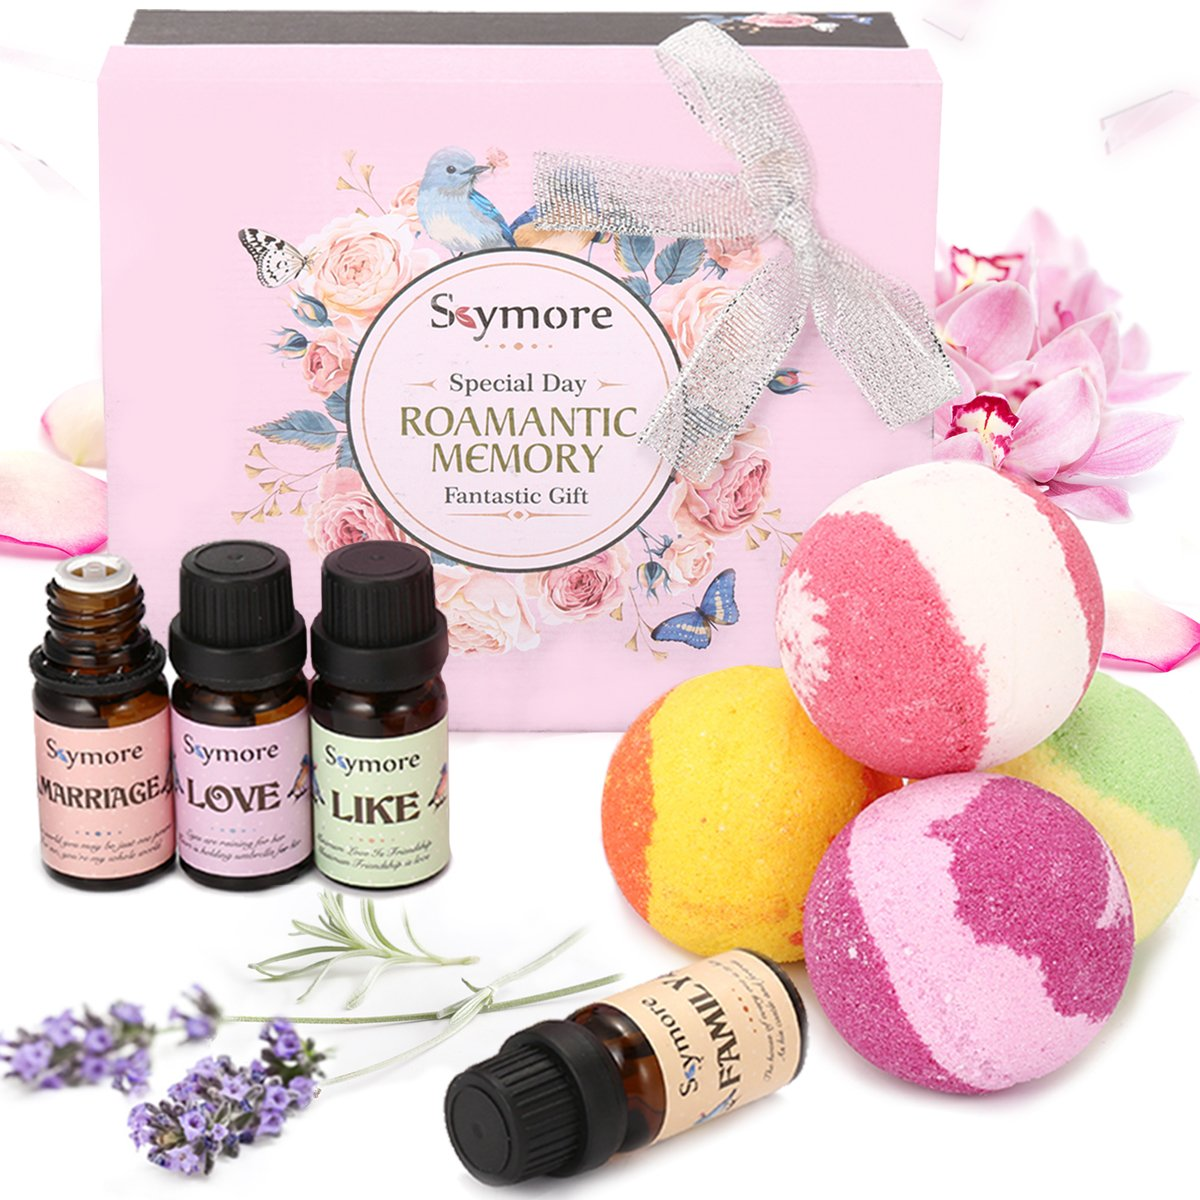 8 pcs Essential Oil with Bath Bombs Gift Set, JOSEKO Handmade Natural Soap Bath Bomb Foam Spa Kit for Women Mother Beauty Aromatherapy 4 x 10ml+4 x 100g